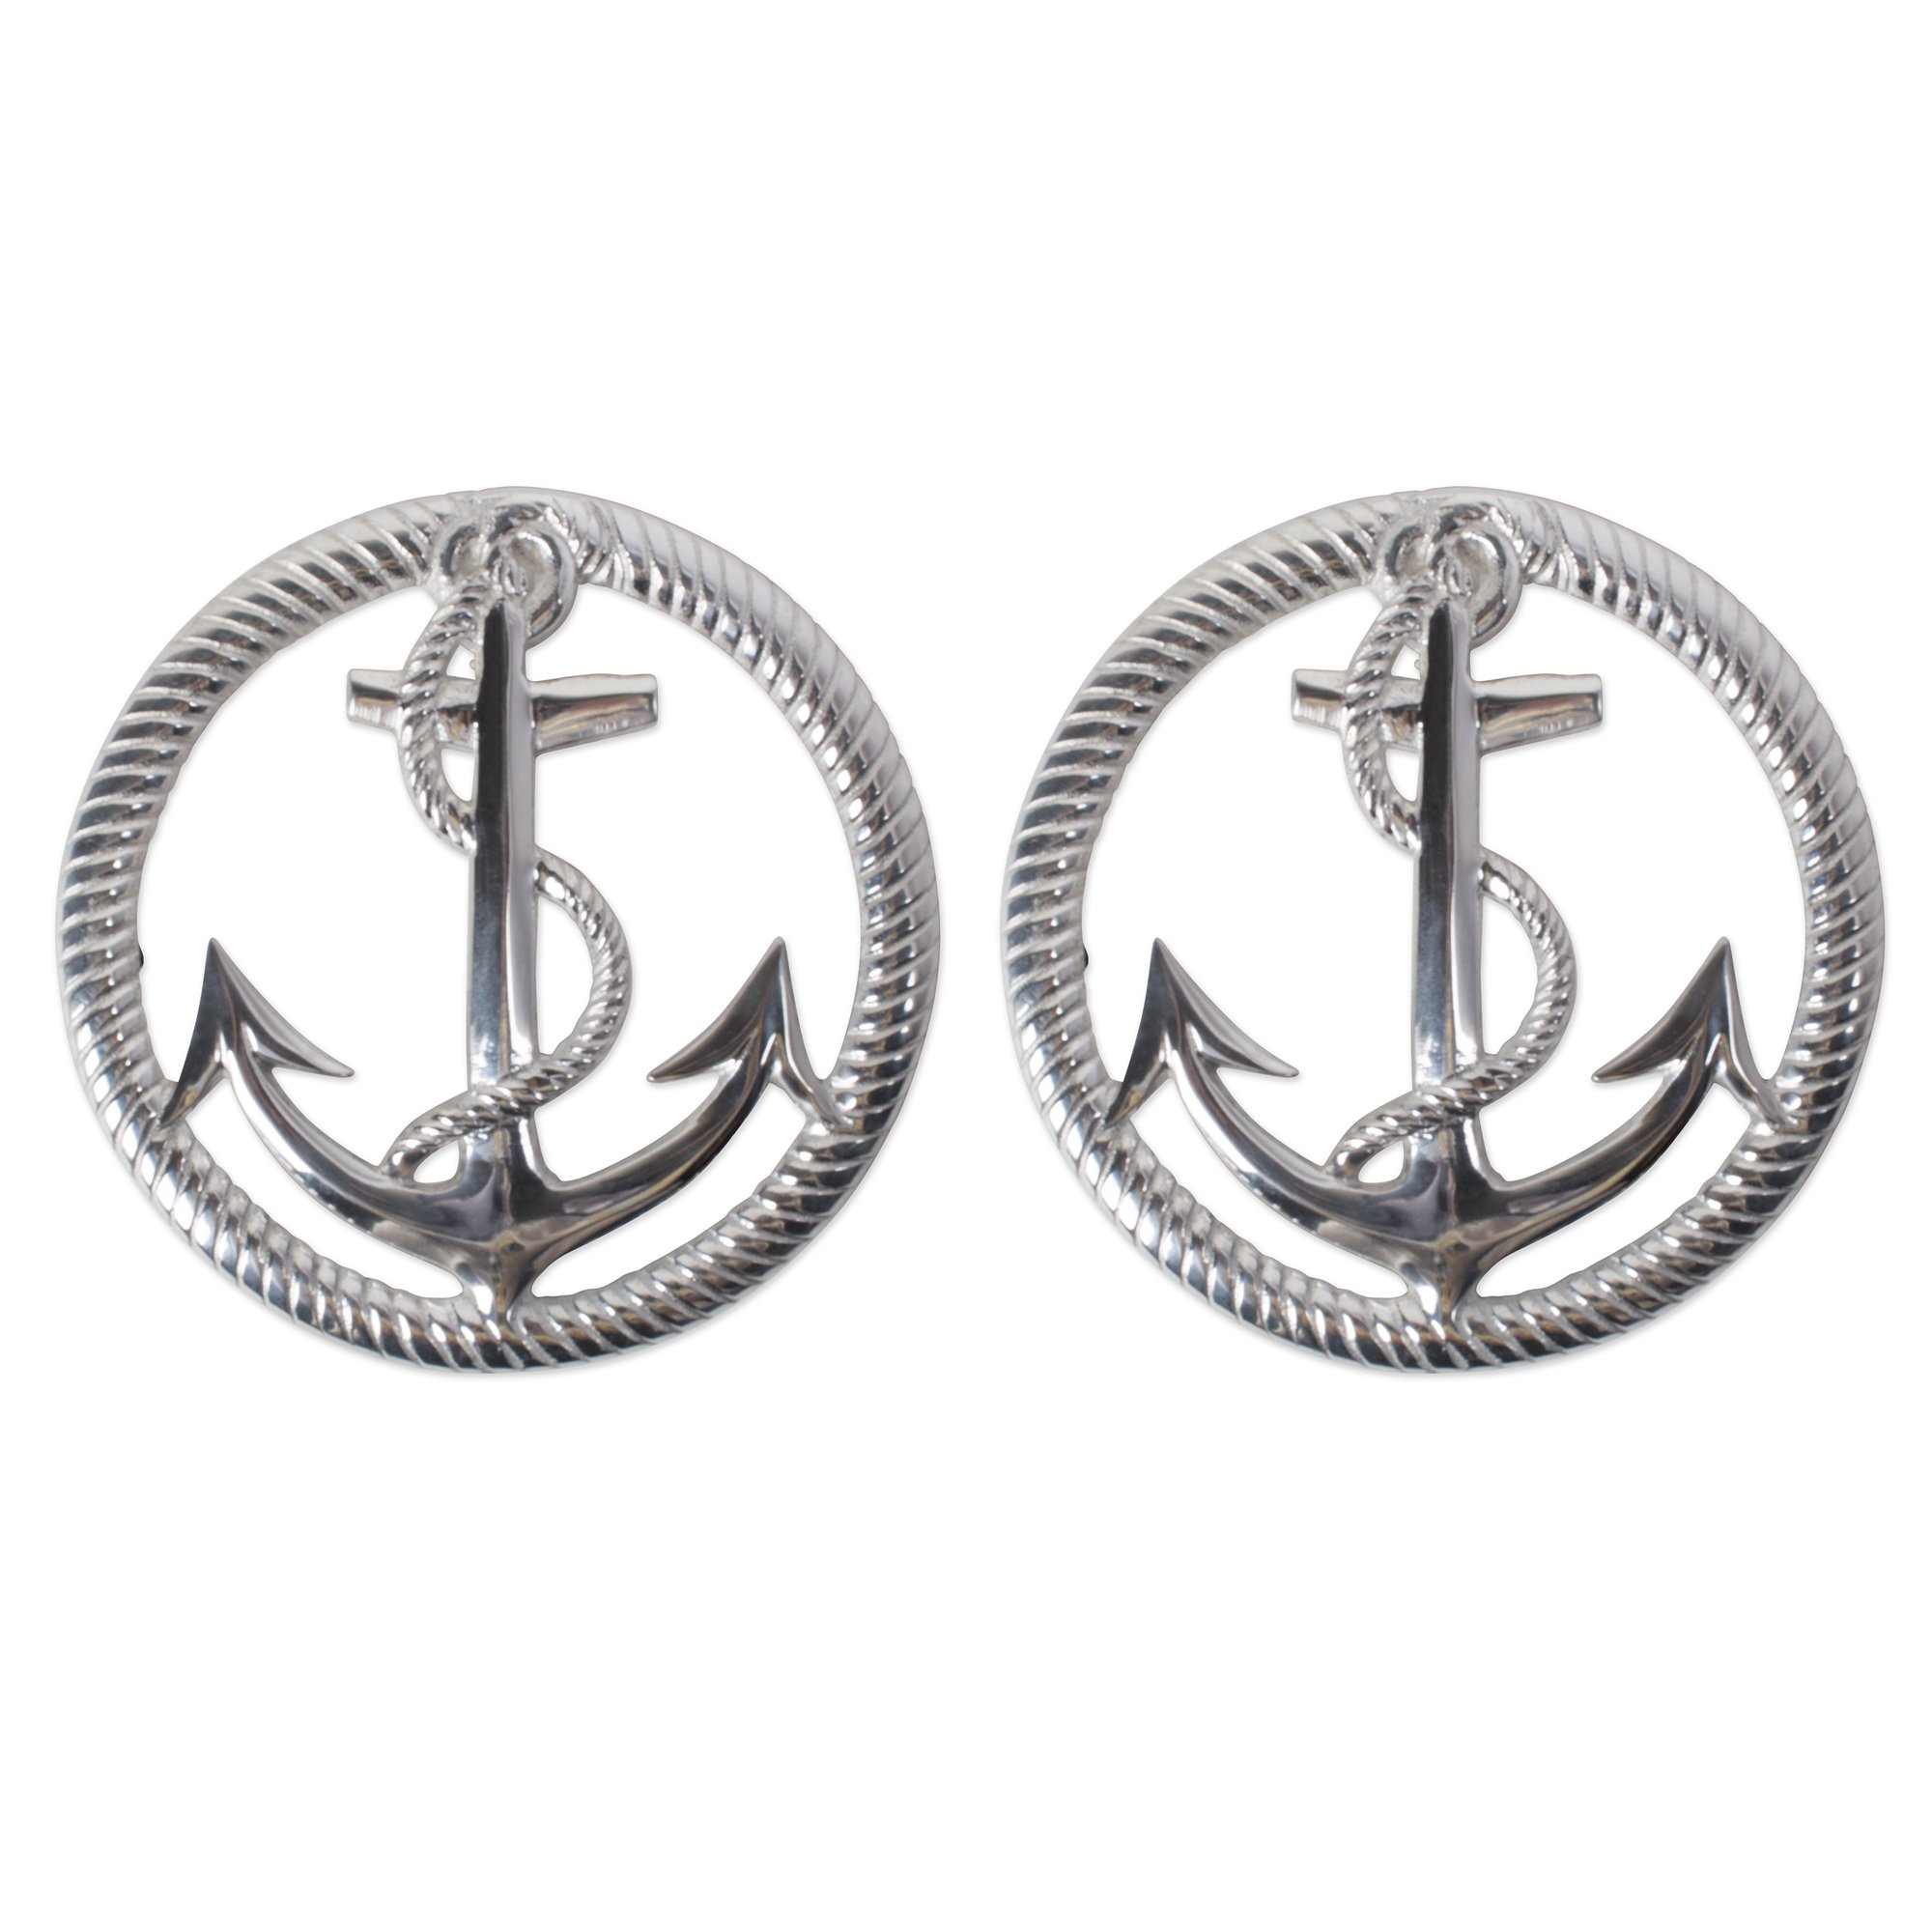 DII CAMZ10639 Cast Iron Anchor and Rope Trivet with Rubber Pegs for Hot Dishes, Kitchen or Dining Table, Set of 2, 8 x 8, Anchor & Rope 2 Pack by DII